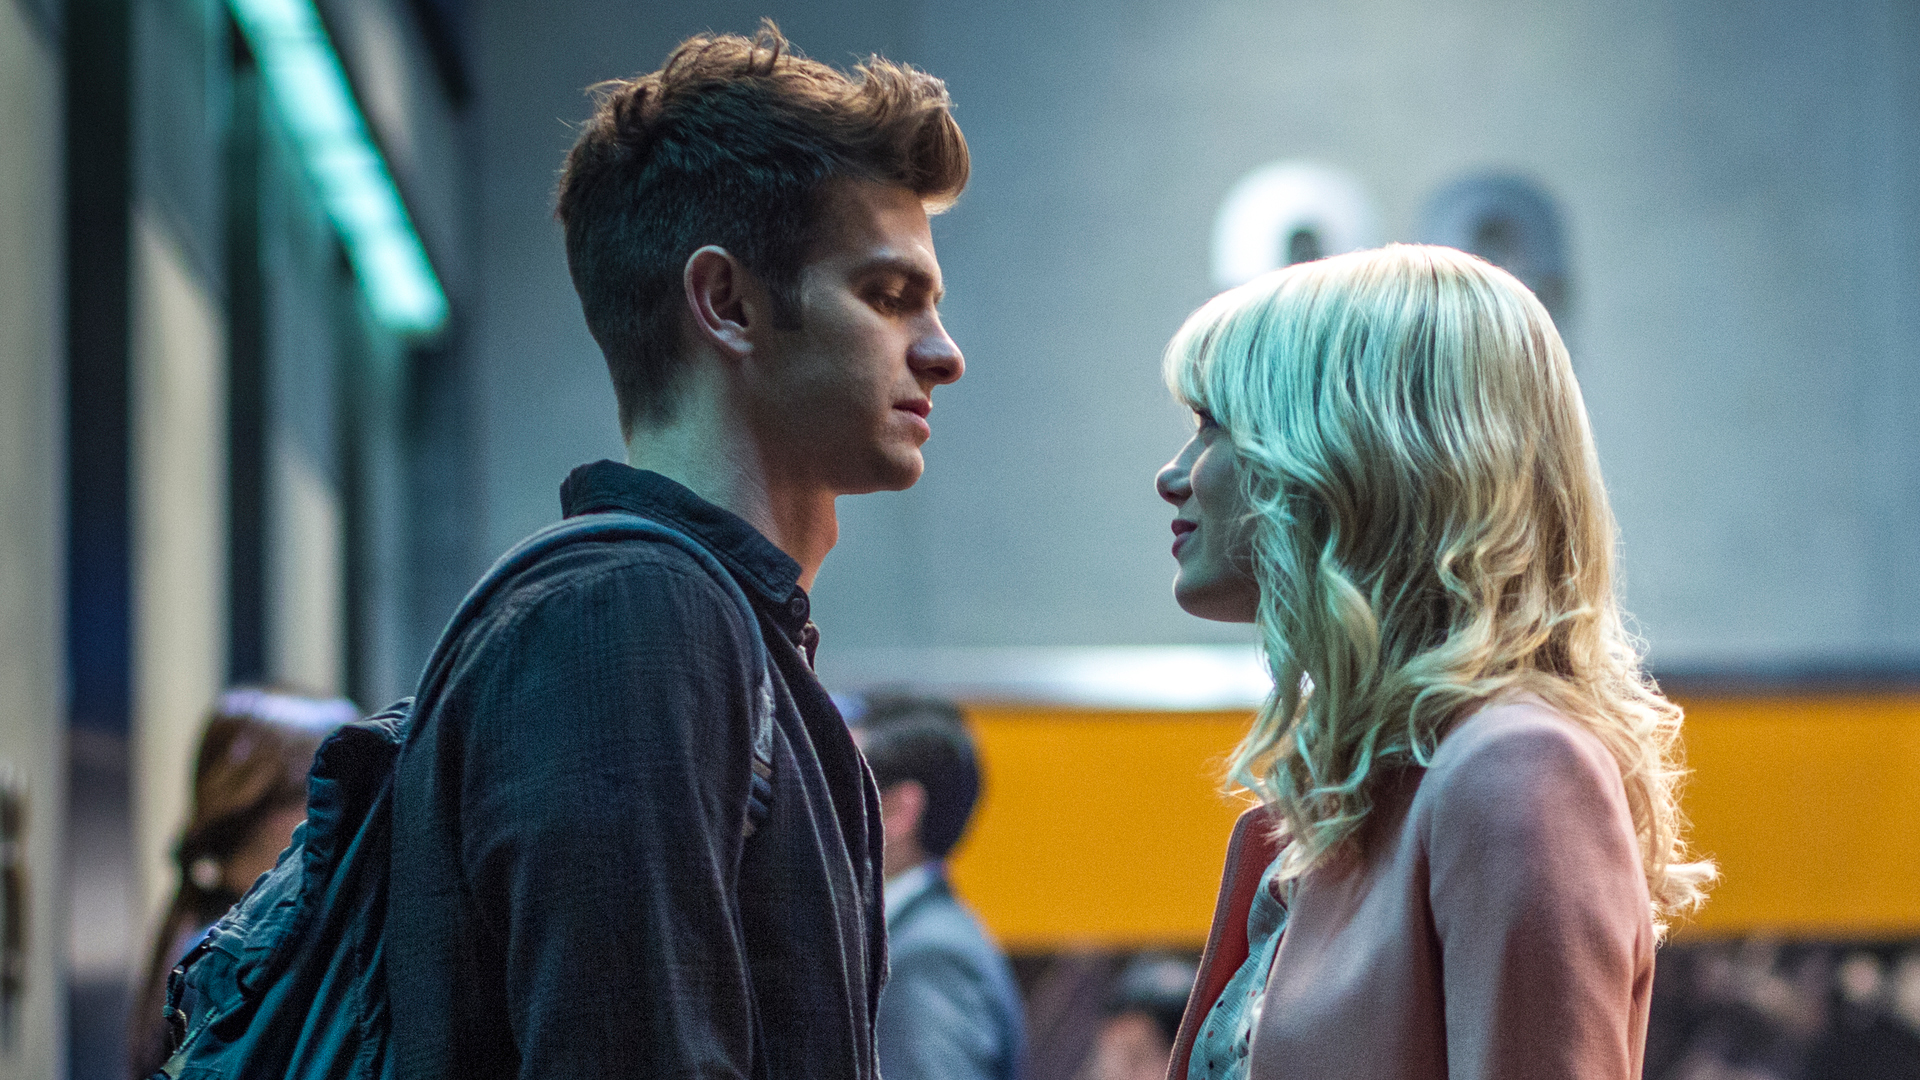 ... peter parker and emma stone as gwen stacy in the amazing spider man 2